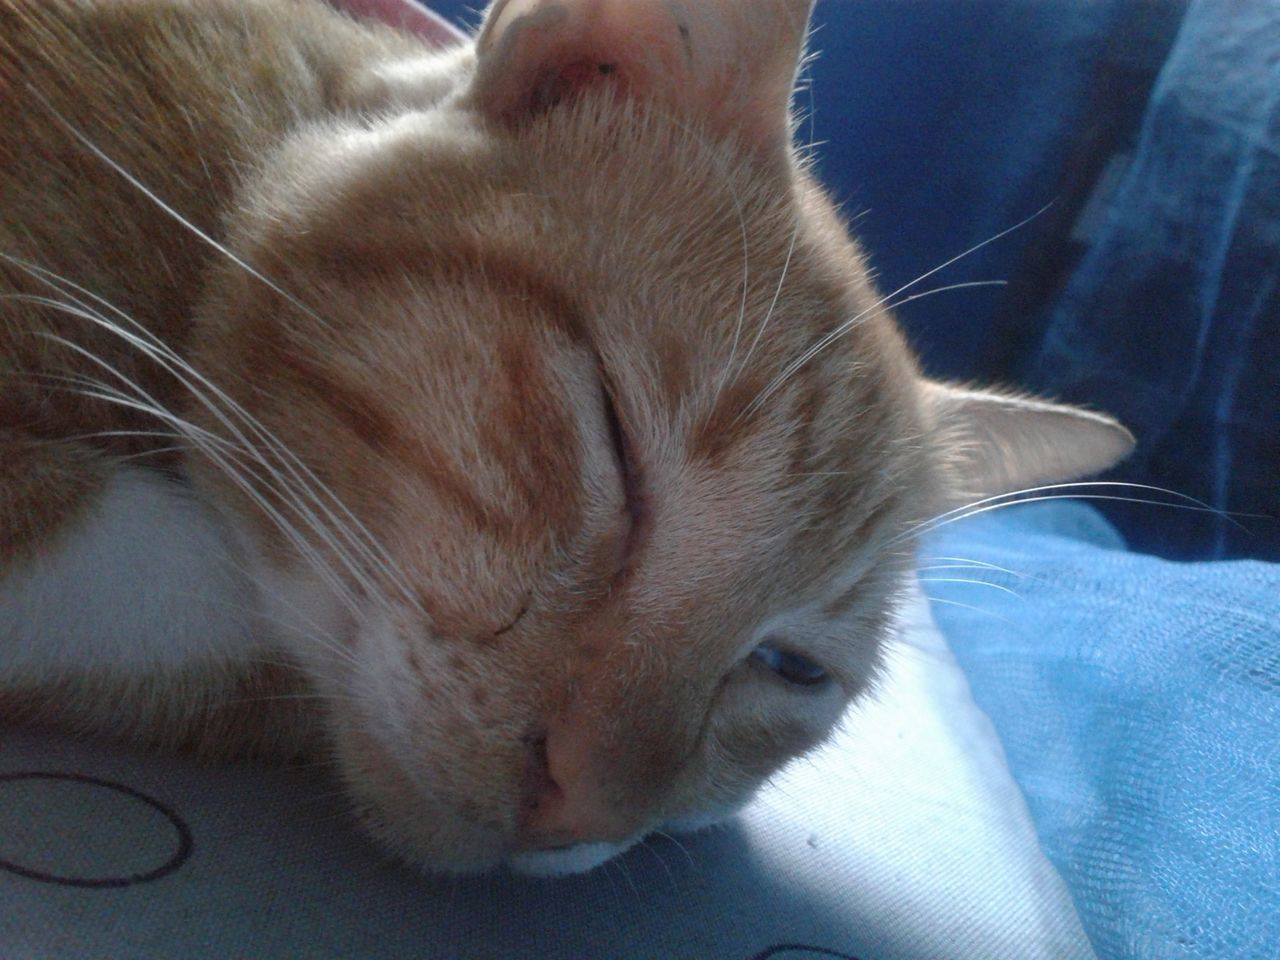 pets, one animal, domestic animals, mammal, animal themes, domestic cat, indoors, eyes closed, sleeping, feline, relaxation, close-up, no people, day